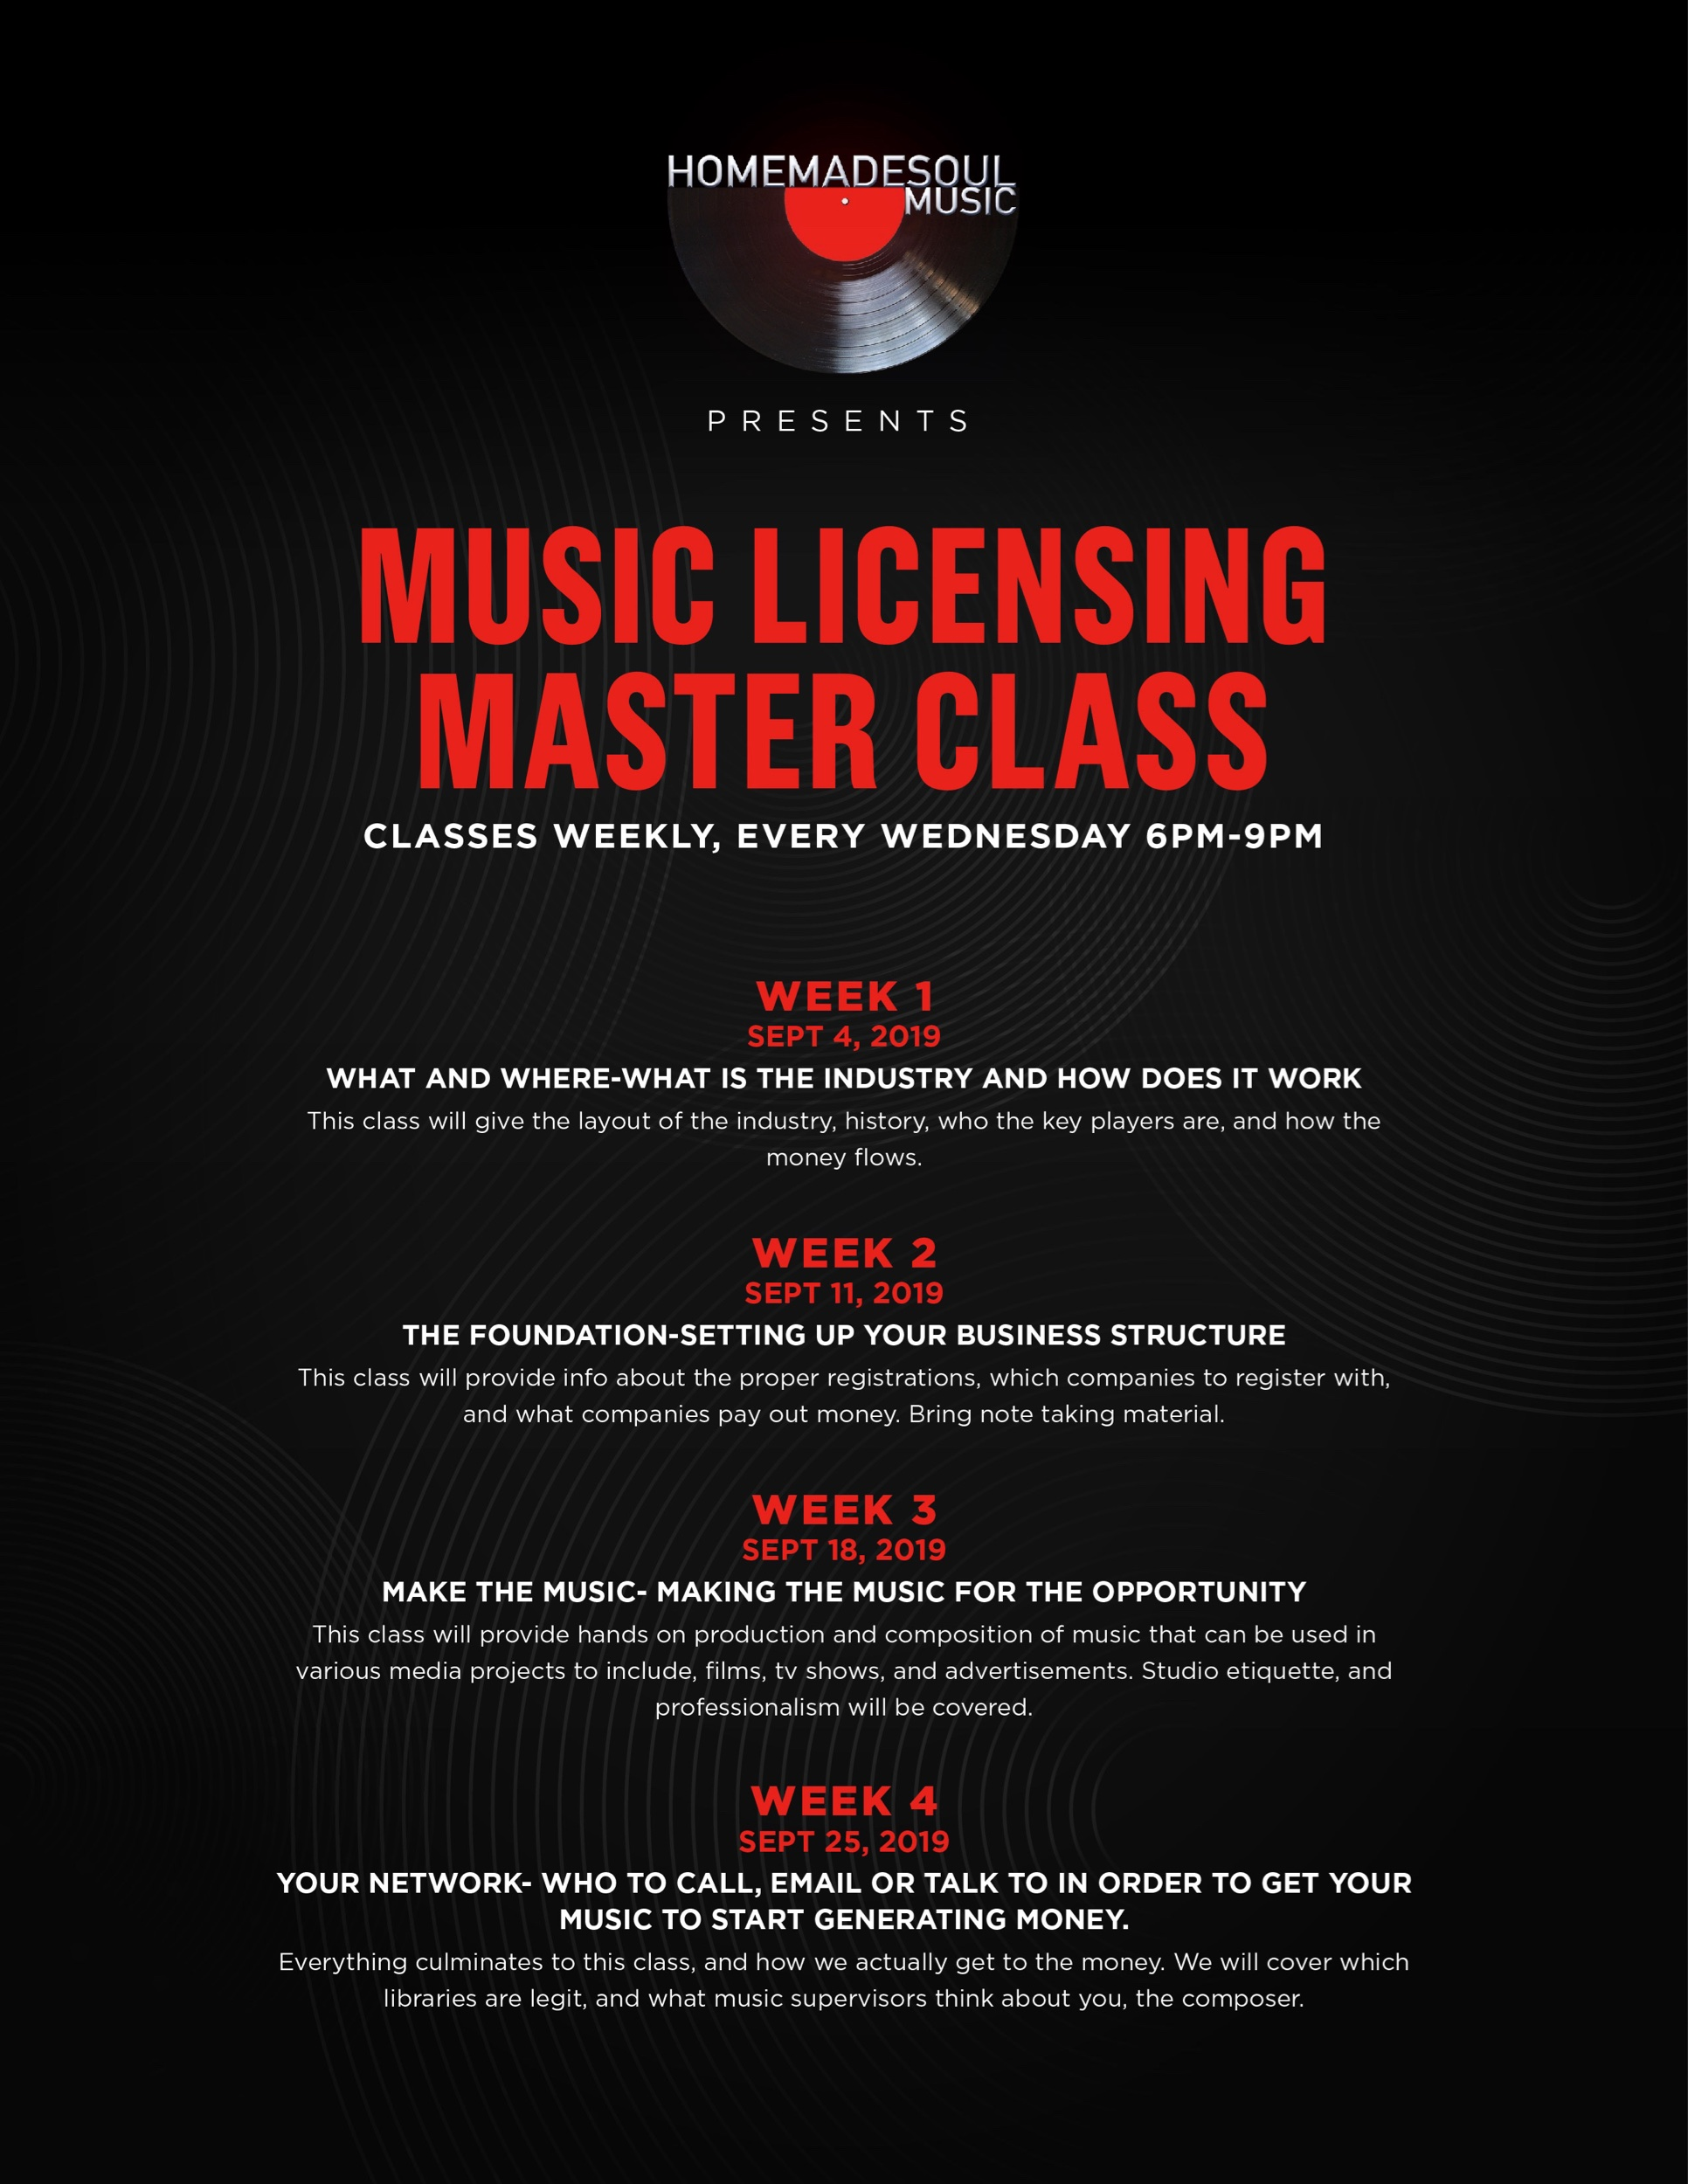 Music Licensing Master Class Details